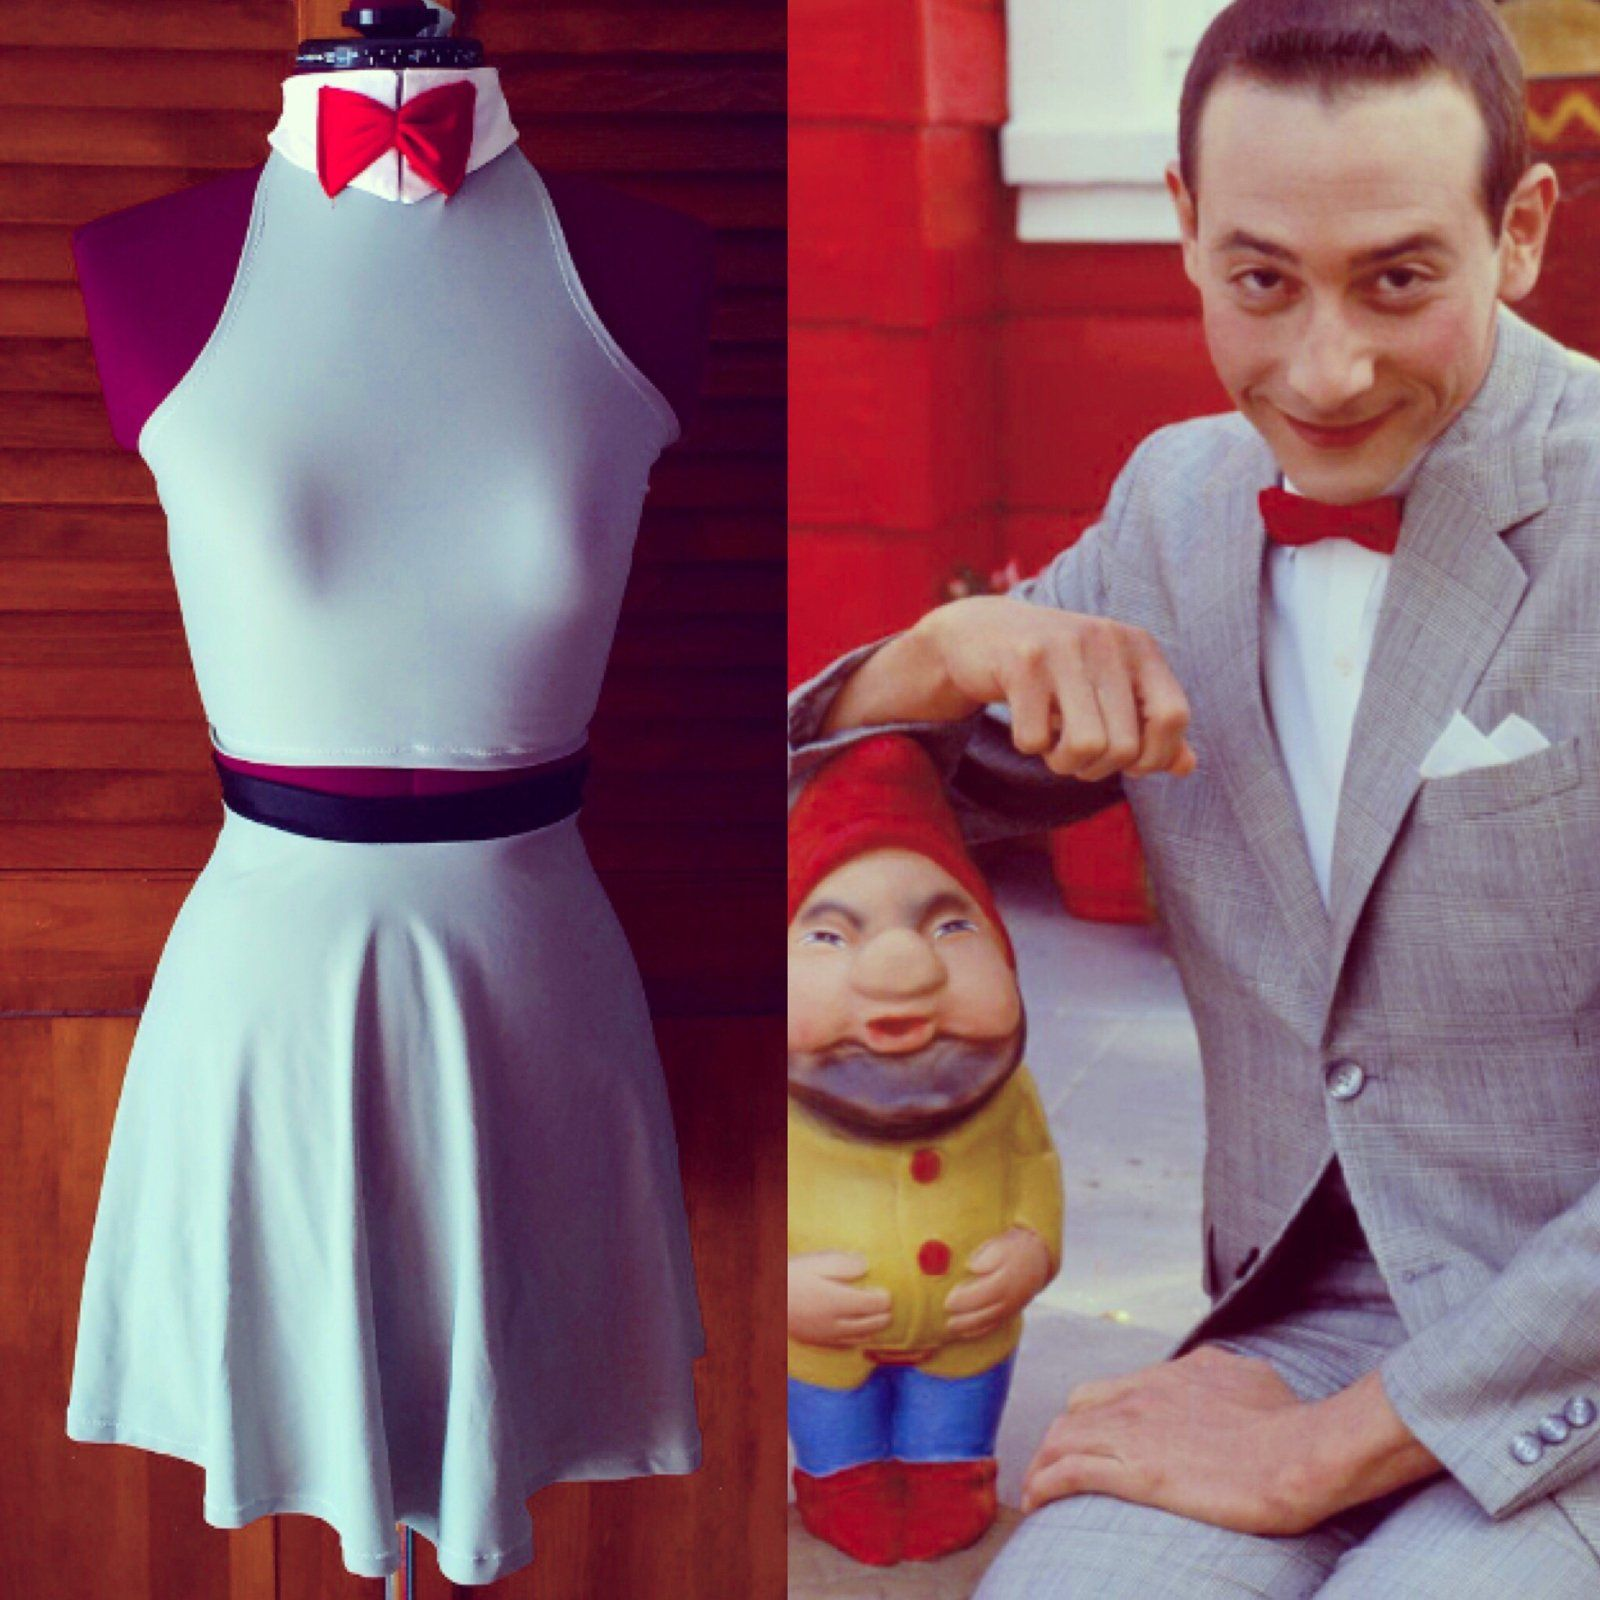 If pee wee Herman could be a girl for 1 day This is what he would wear and now you can wear it all the time and be a loner A REBEL! This set is made from soft stretch gray spandex The top has a white collar with a red bow the back is a halter style so it give a dash of sexy the skirt is a skater skirt stye with a black band around the waist to beak up all the grey and give a cute belt effect